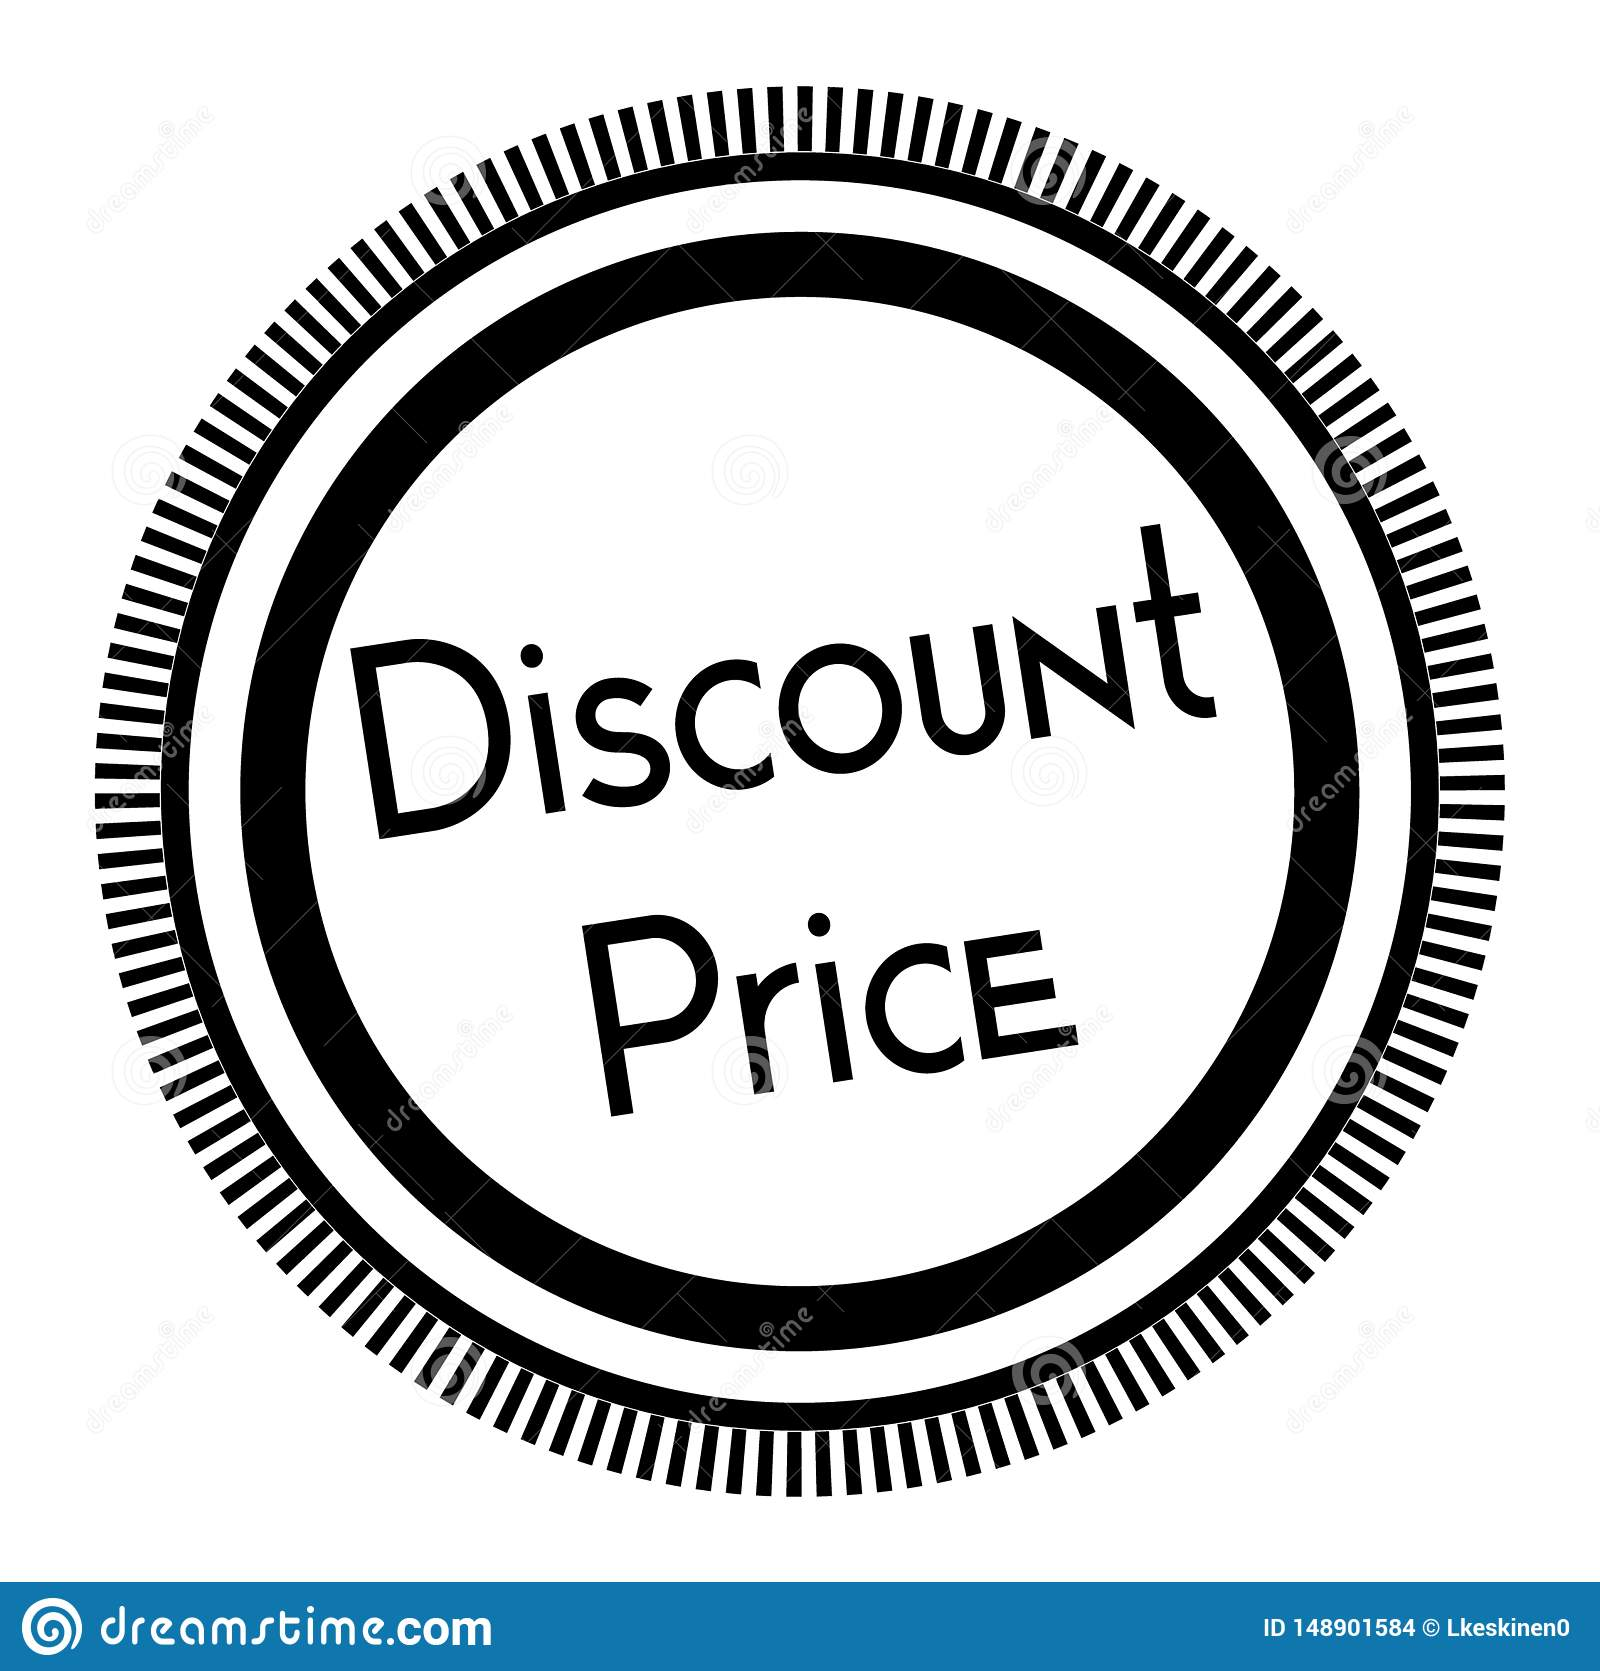 DISCOUNT PRICE stamp on white background